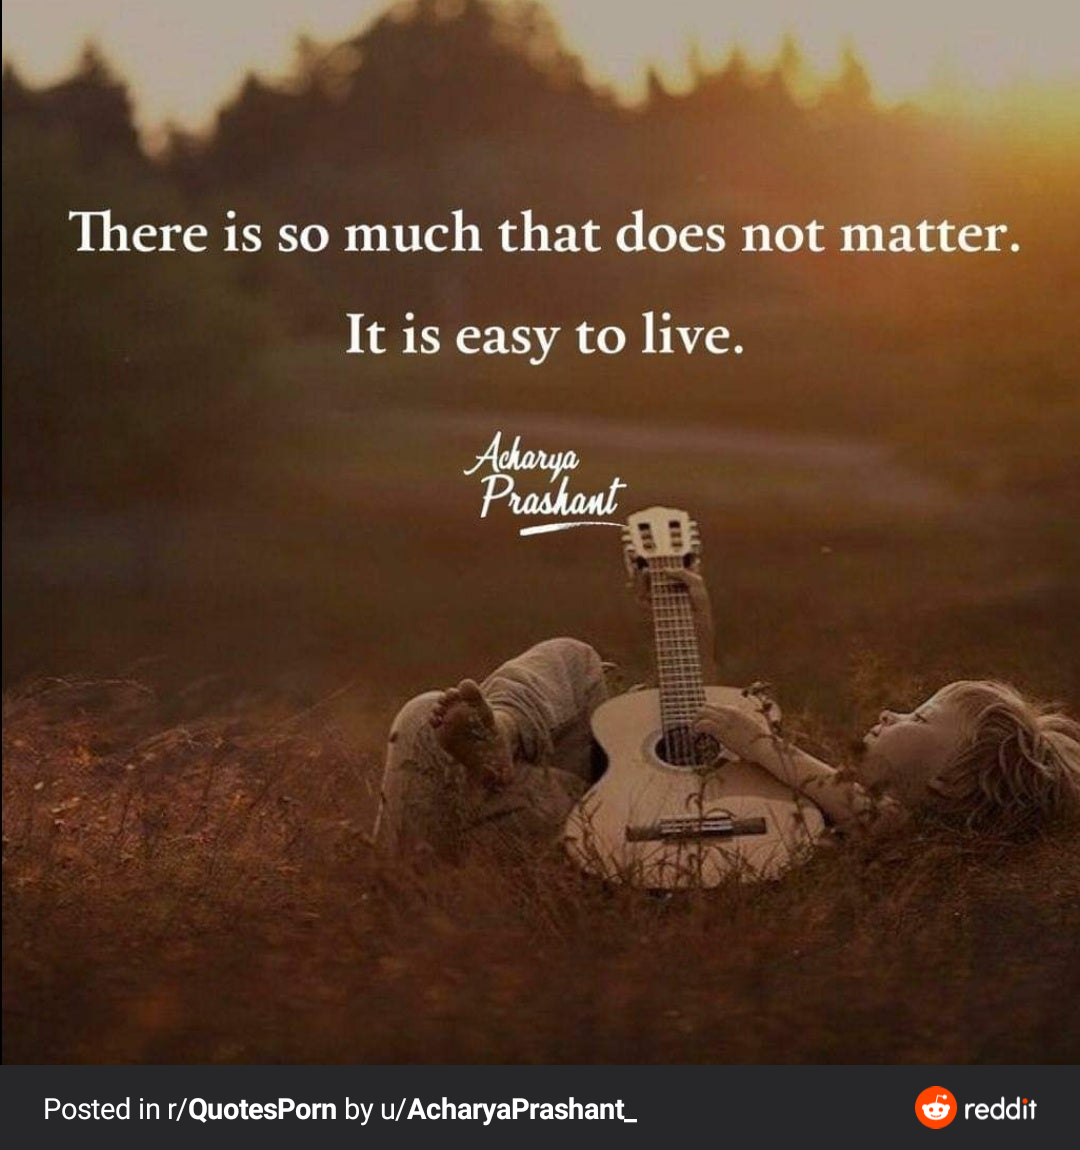 There is so much that does not matter. It is easy to live. ~ Acharya Prashant [1080*1150]